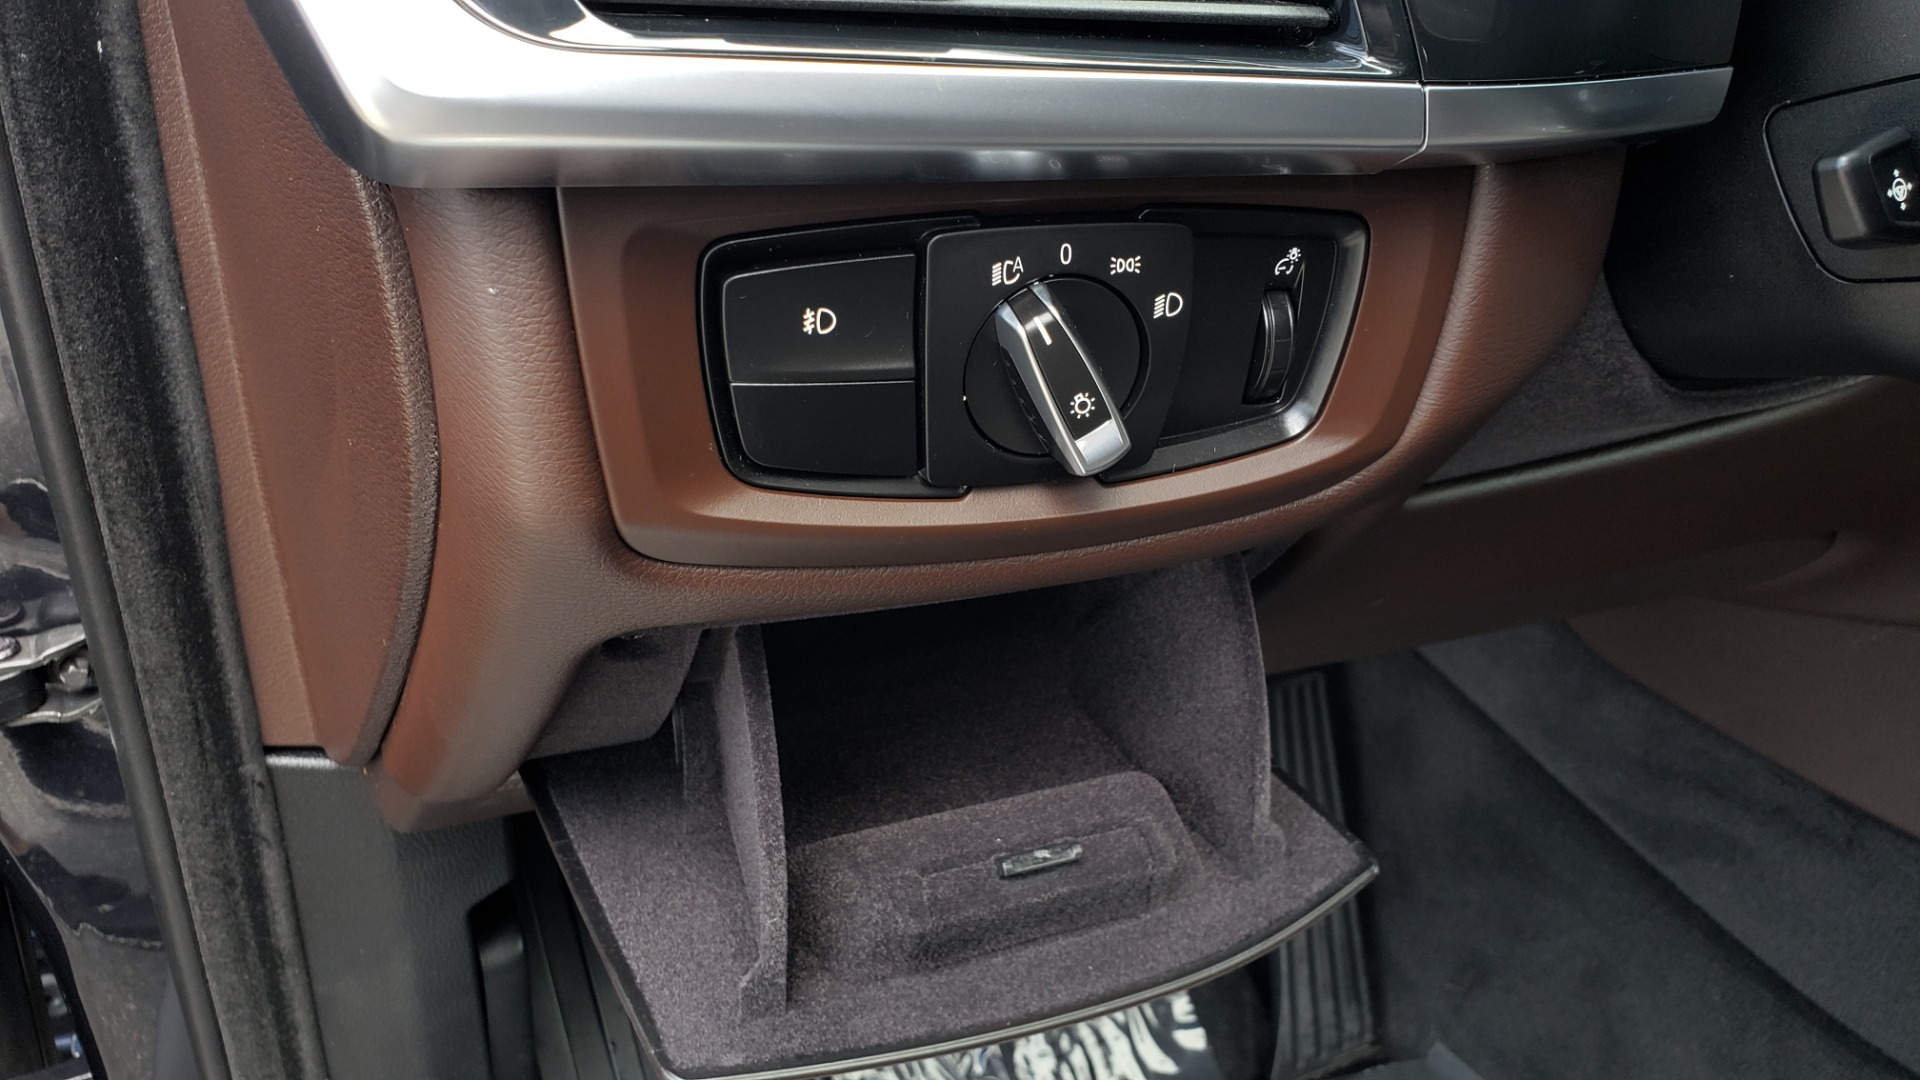 Used 2018 BMW X5 XDRIVE35I PREMIUM / LUXURY / DRVR ASST / HUD / LANE WARNING / REARVIEW for sale $43,695 at Formula Imports in Charlotte NC 28227 43